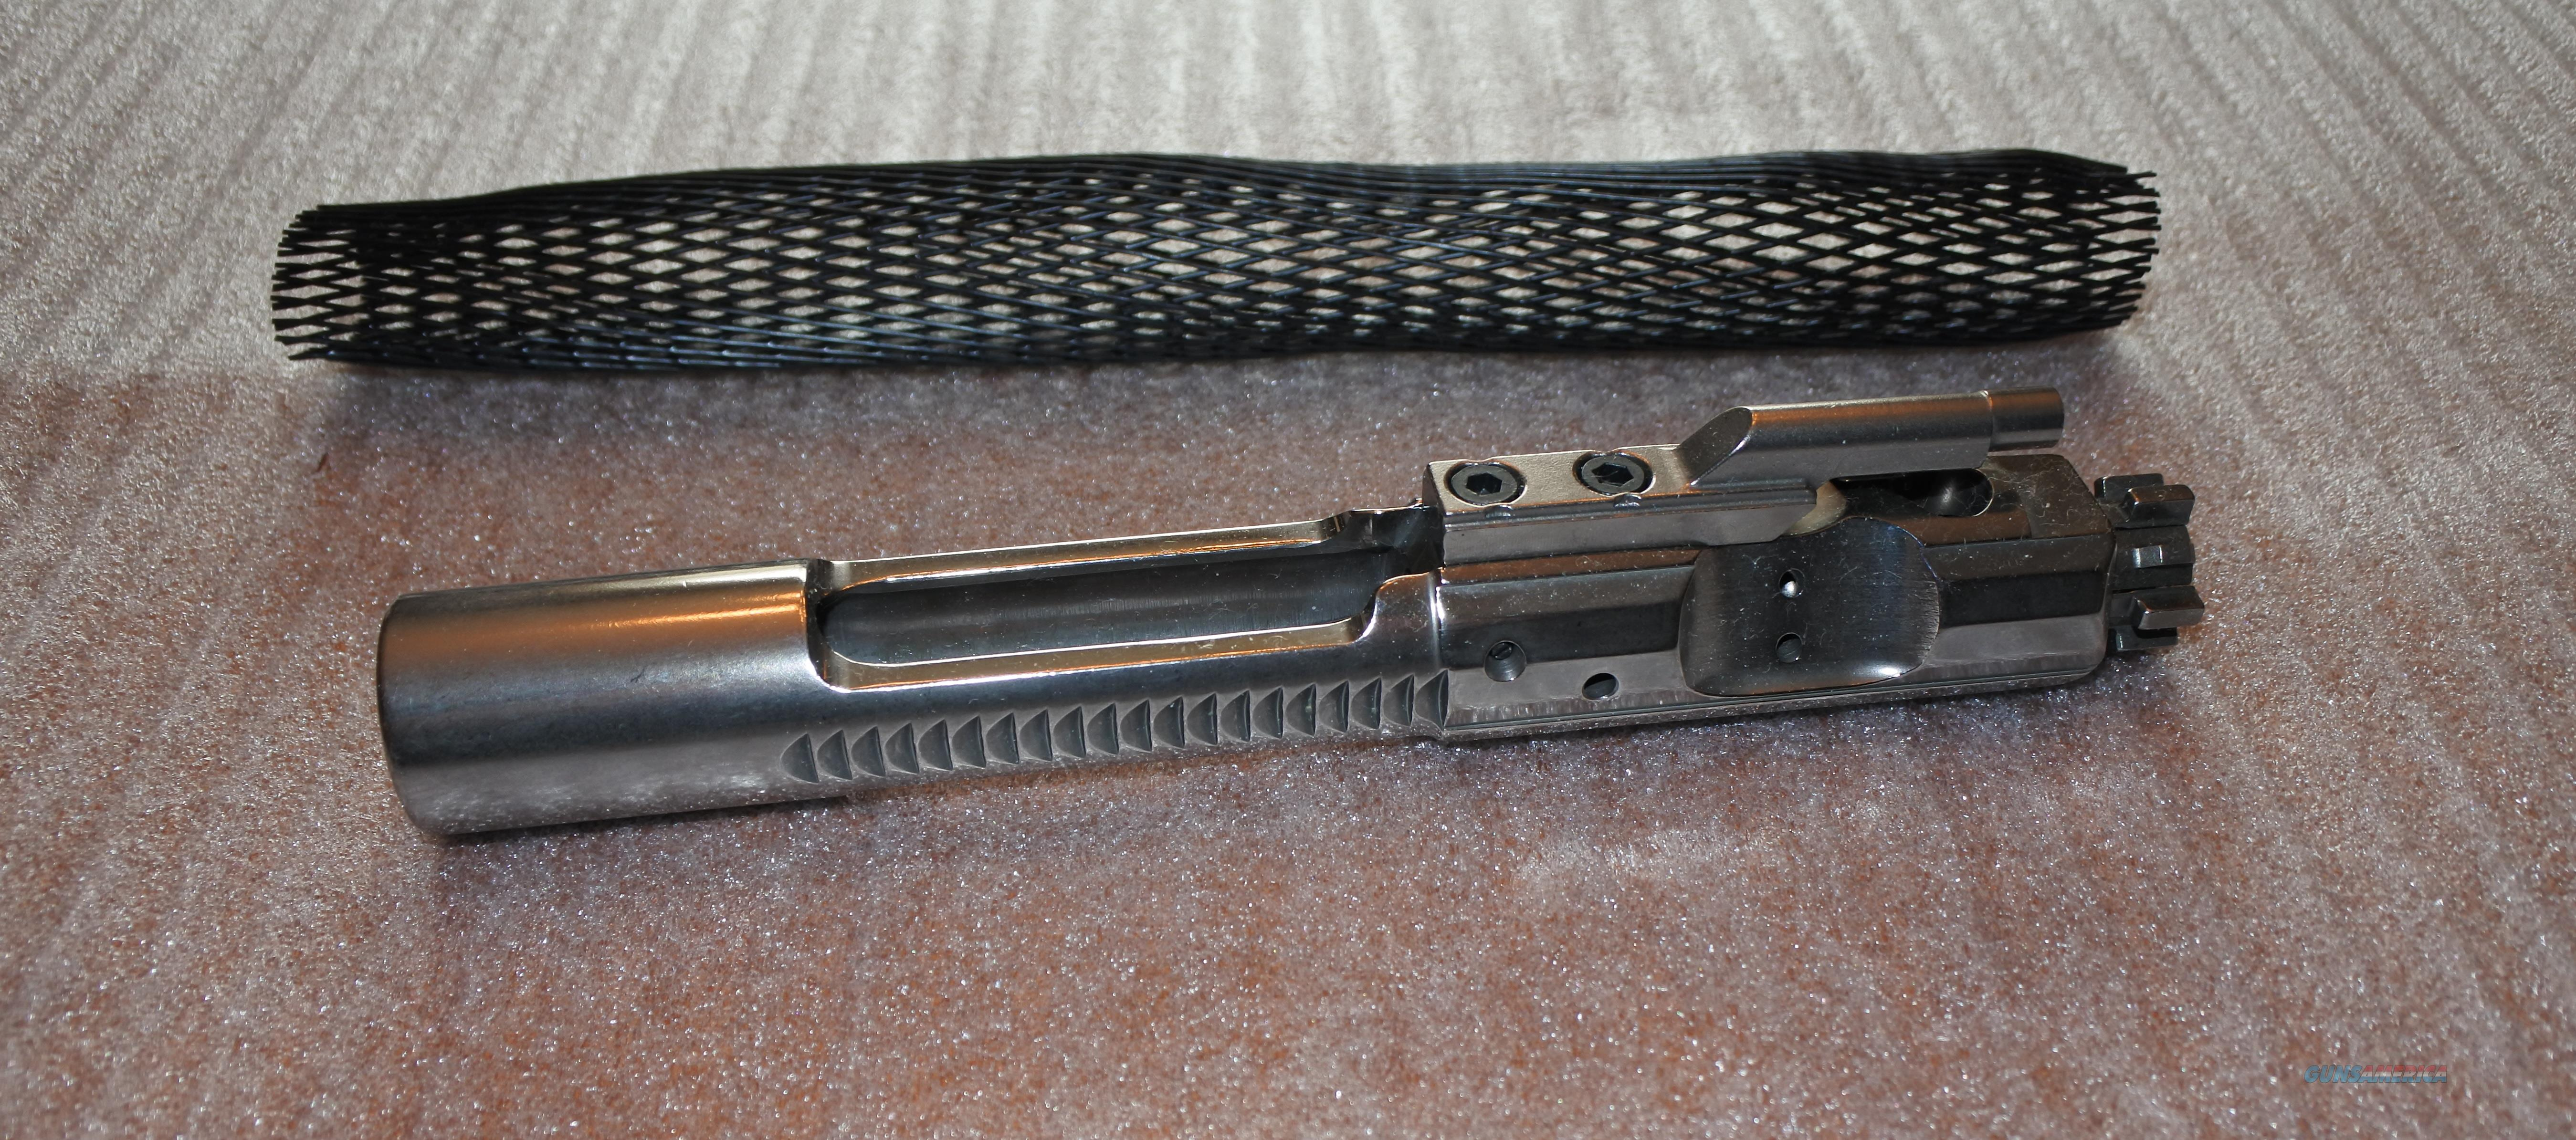 TOOLCRAFT BCG  223/5 56 BOLT CARRIER GROUP NI-BO (Fail Zero) FACETED 9310  MPI COMPLETE